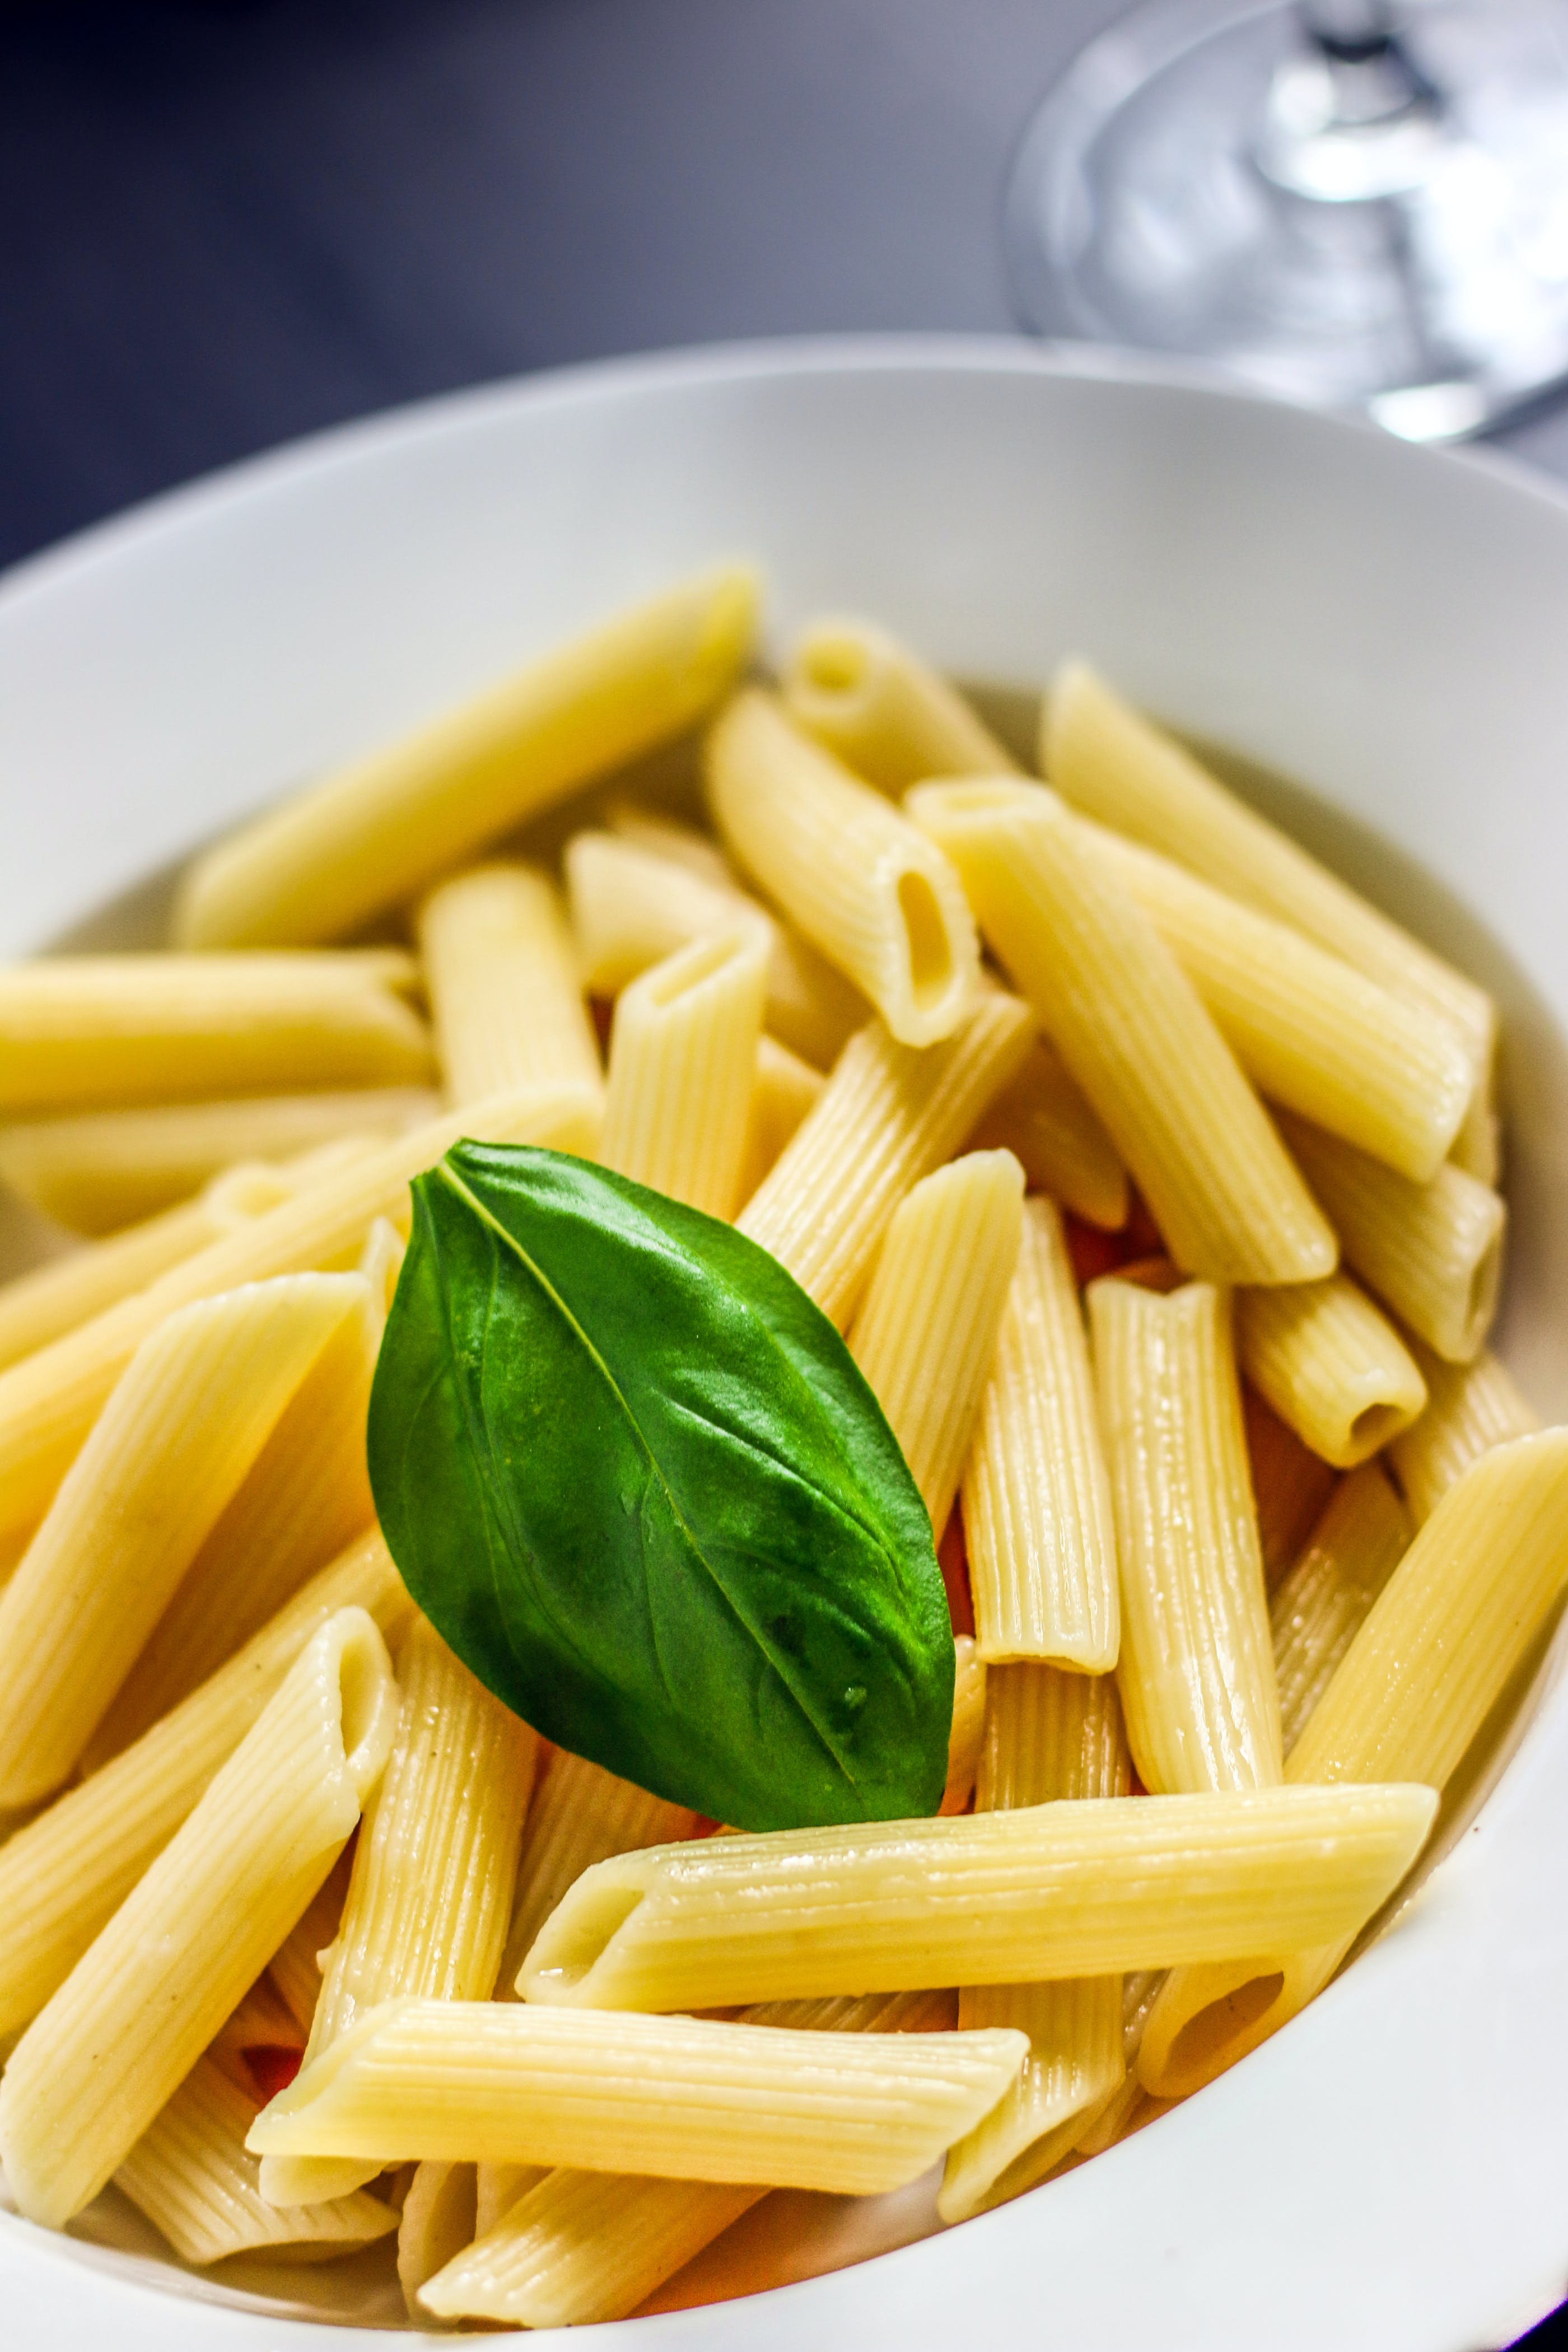 basil, bowl, carbohydrate